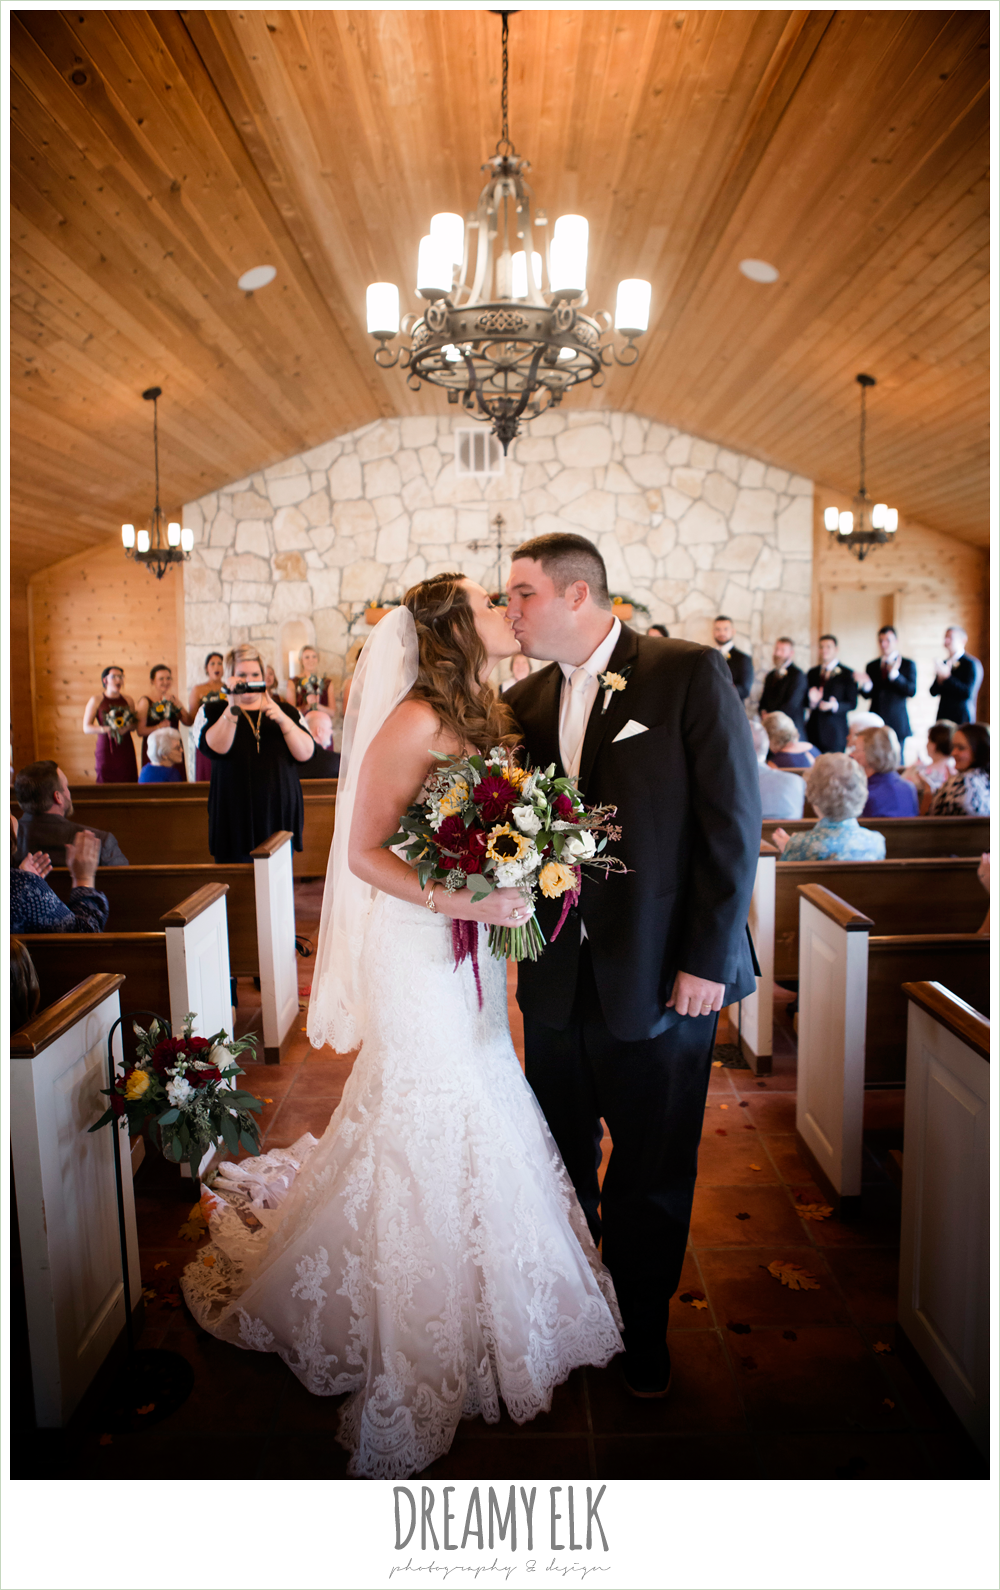 men's wearhouse, ventura's bridal fashions, sweetheart lace strapless fit and flare wedding dress, wild bunches floral, bride and groom kissing, walking down the aisle, wedding ceremony, maroon and gold fall wedding photo, la hacienda, dripping springs, texas {dreamy elk photography and design}